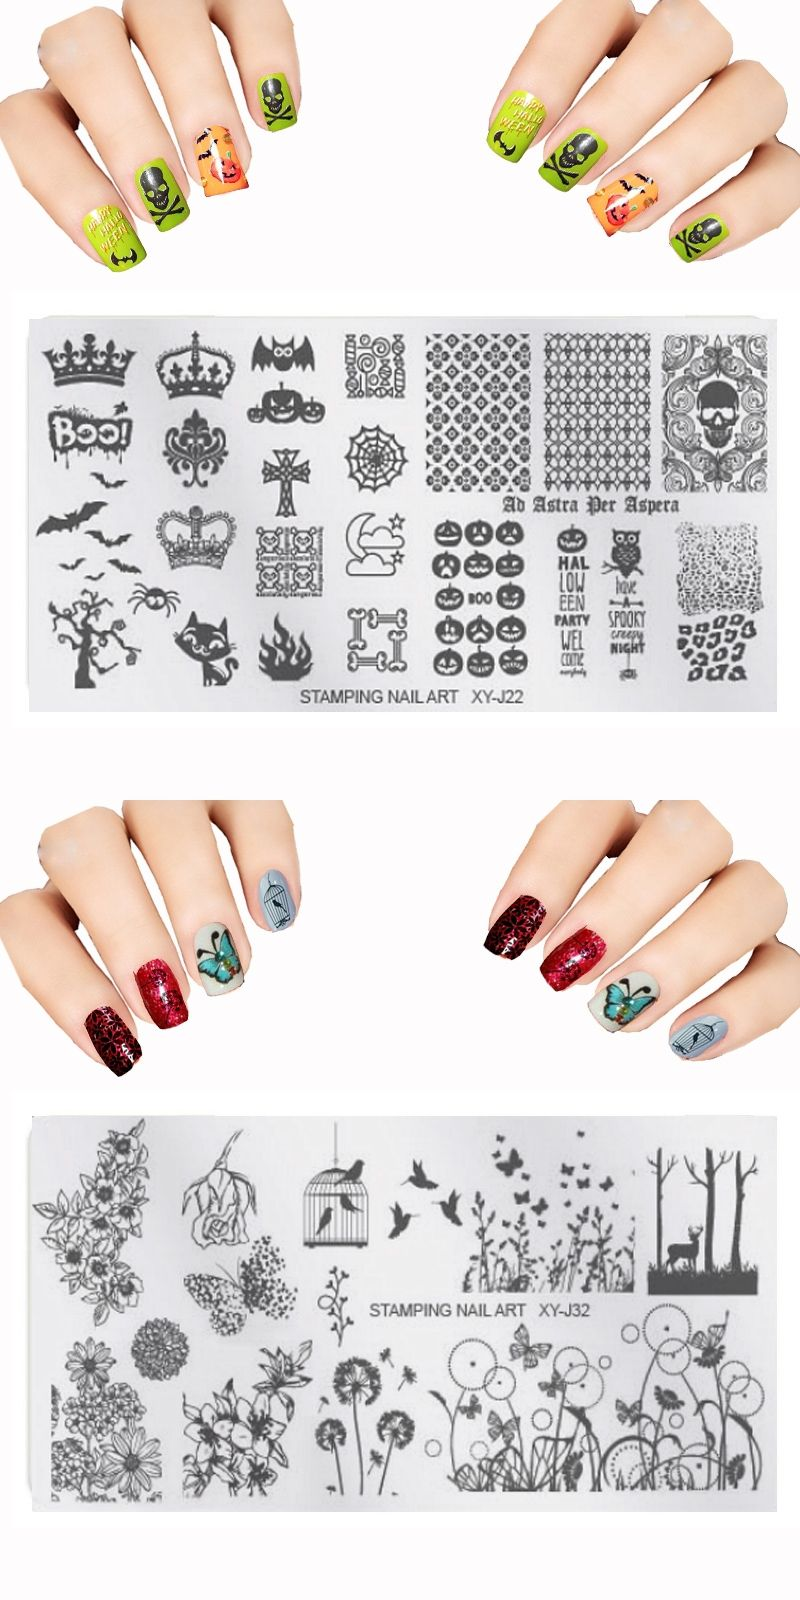 New Xyj Set Nail Art Templates Kit Flower Christmas Tree Steel For